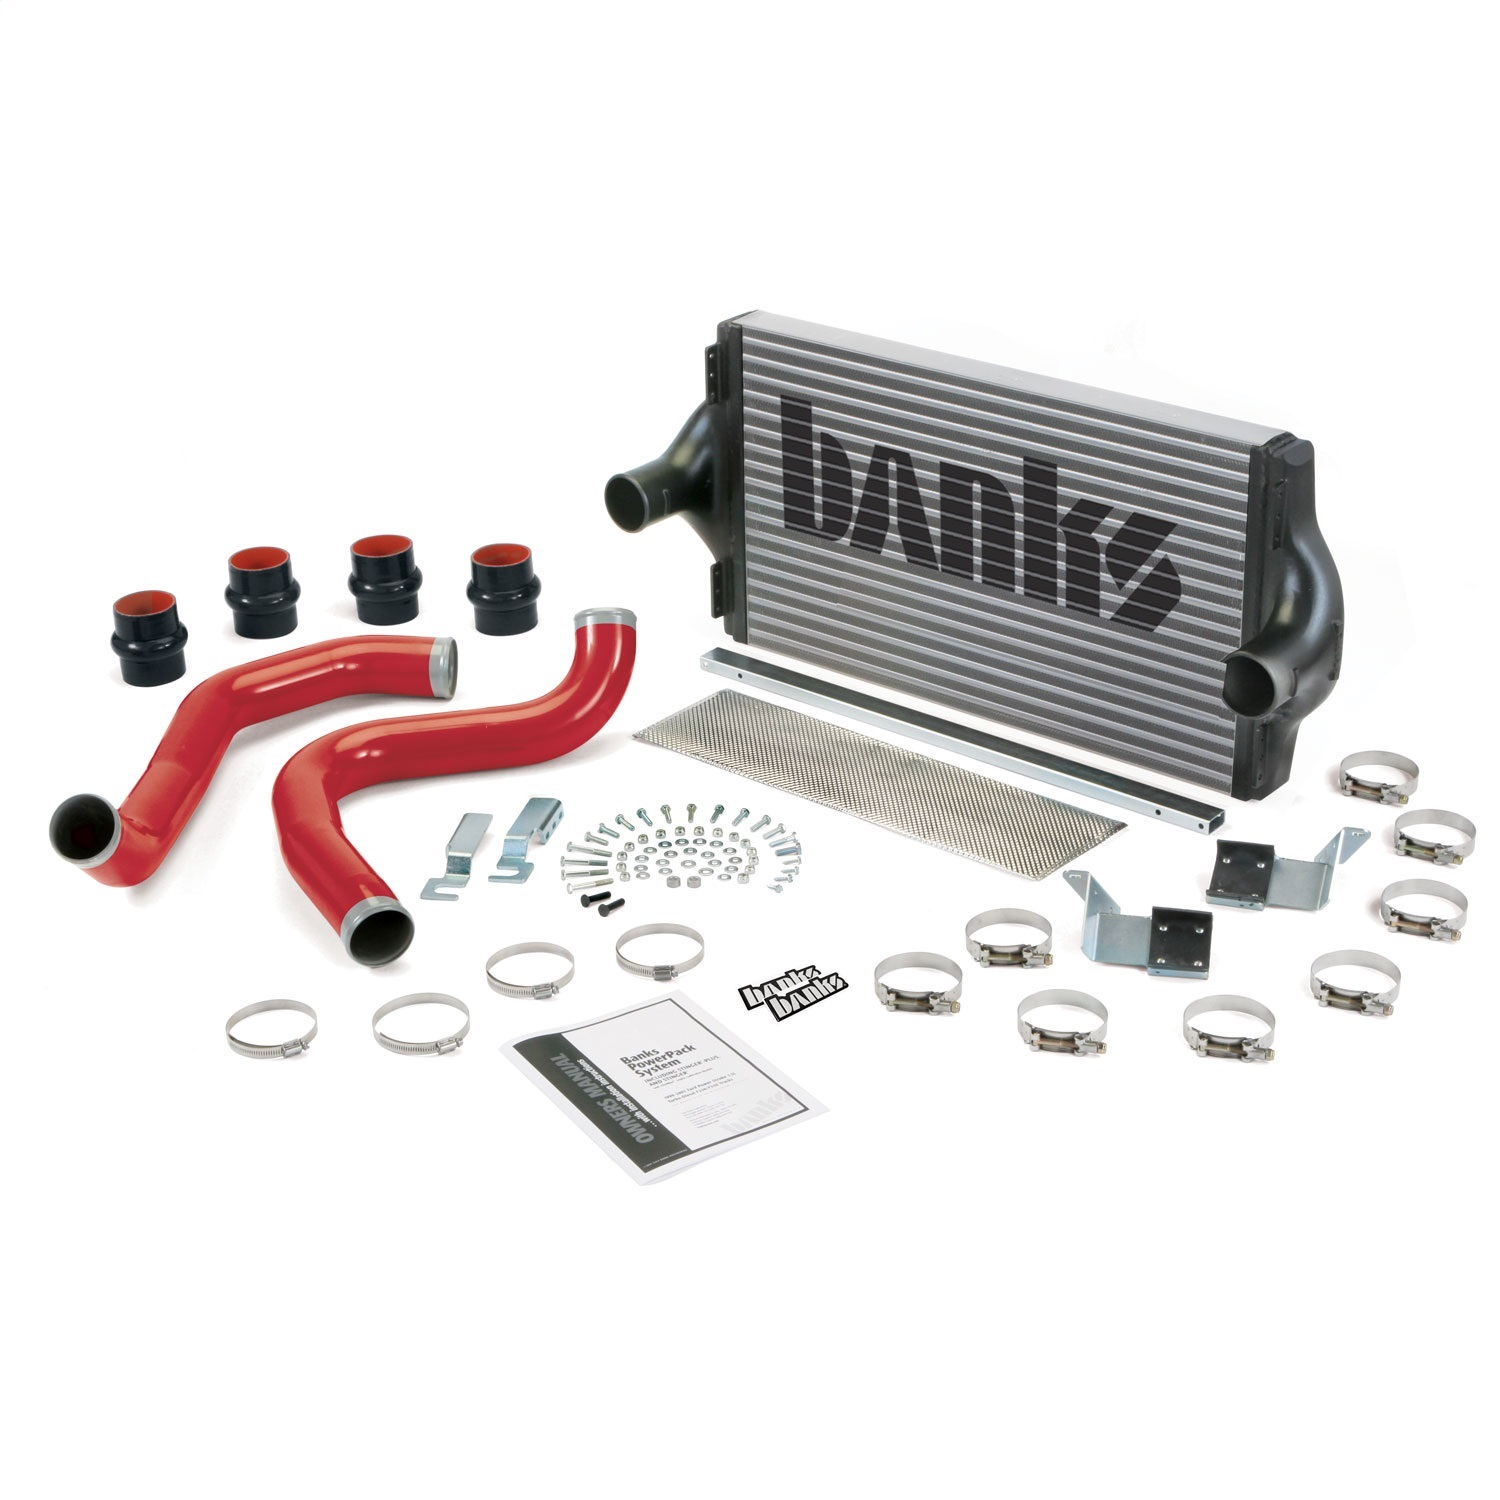 Banks Power 25973 Techni-Cooler Intercooler System